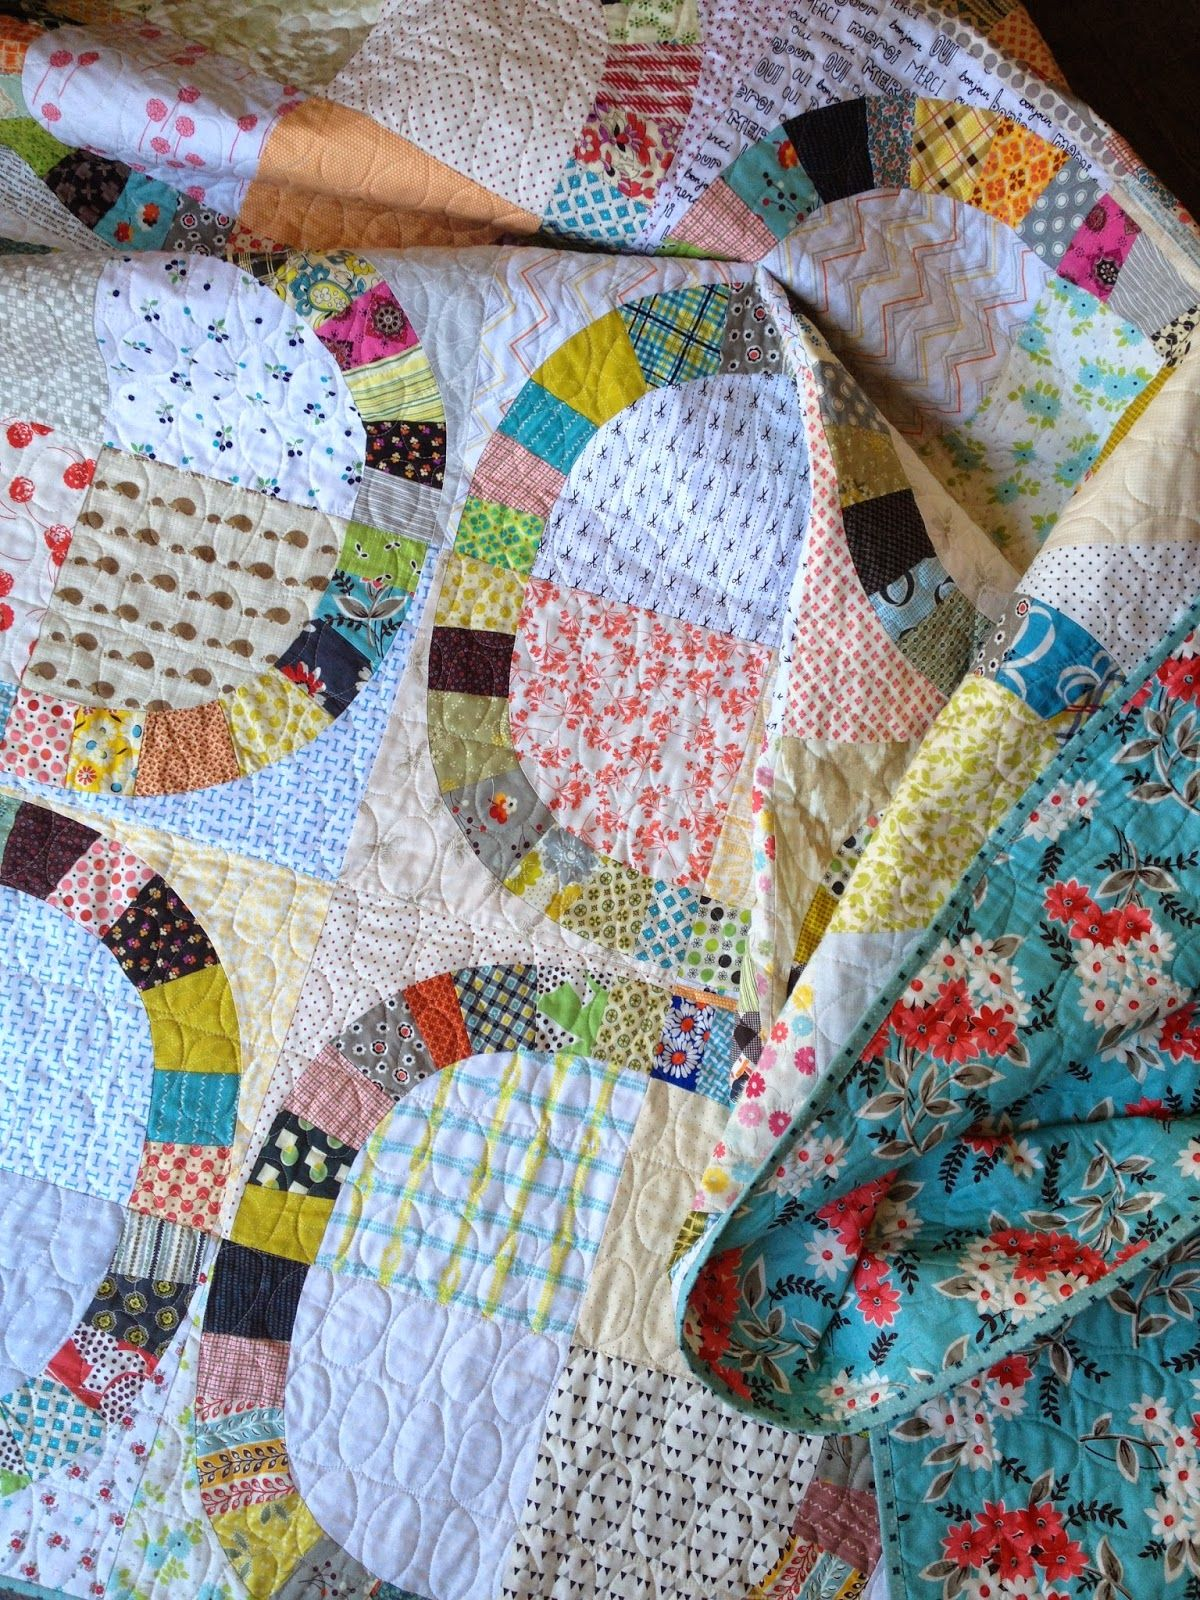 some wednesday favorite quilts friends home quilt and corner june of prairie my sunbonnet from girls cottage sue